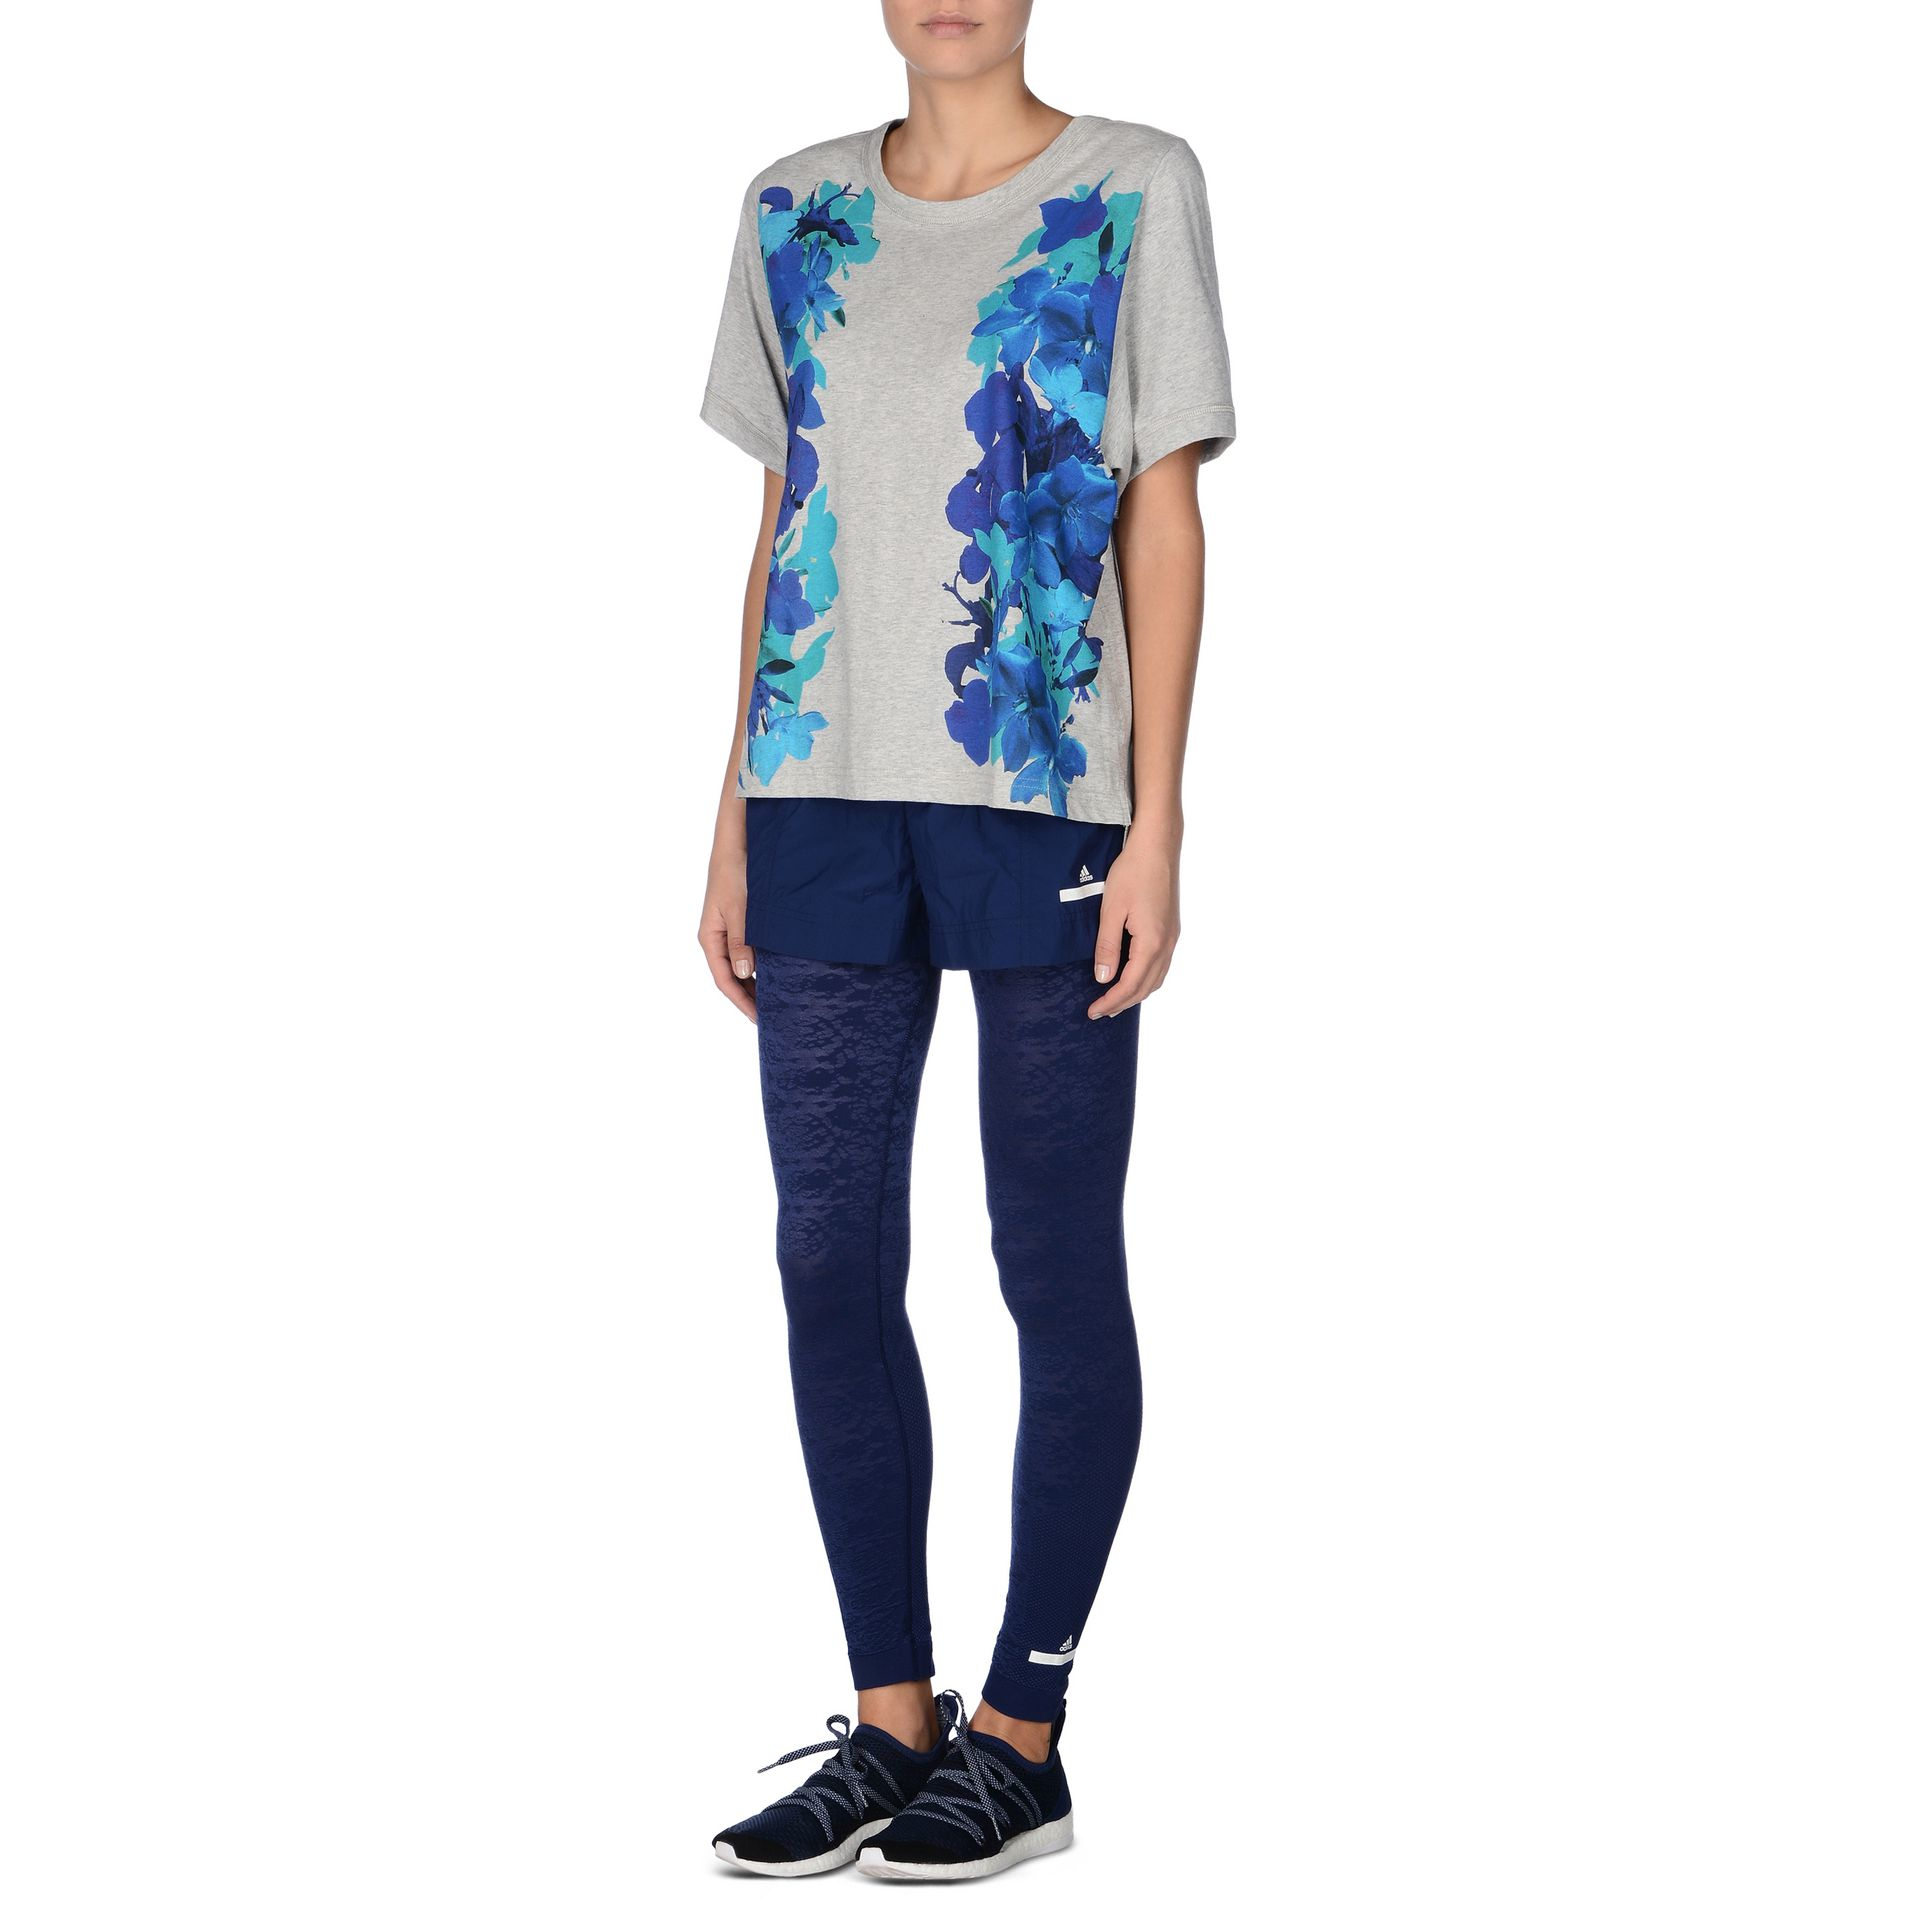 lyst adidas by stella mccartney blossom essentials t shirt in blue. Black Bedroom Furniture Sets. Home Design Ideas